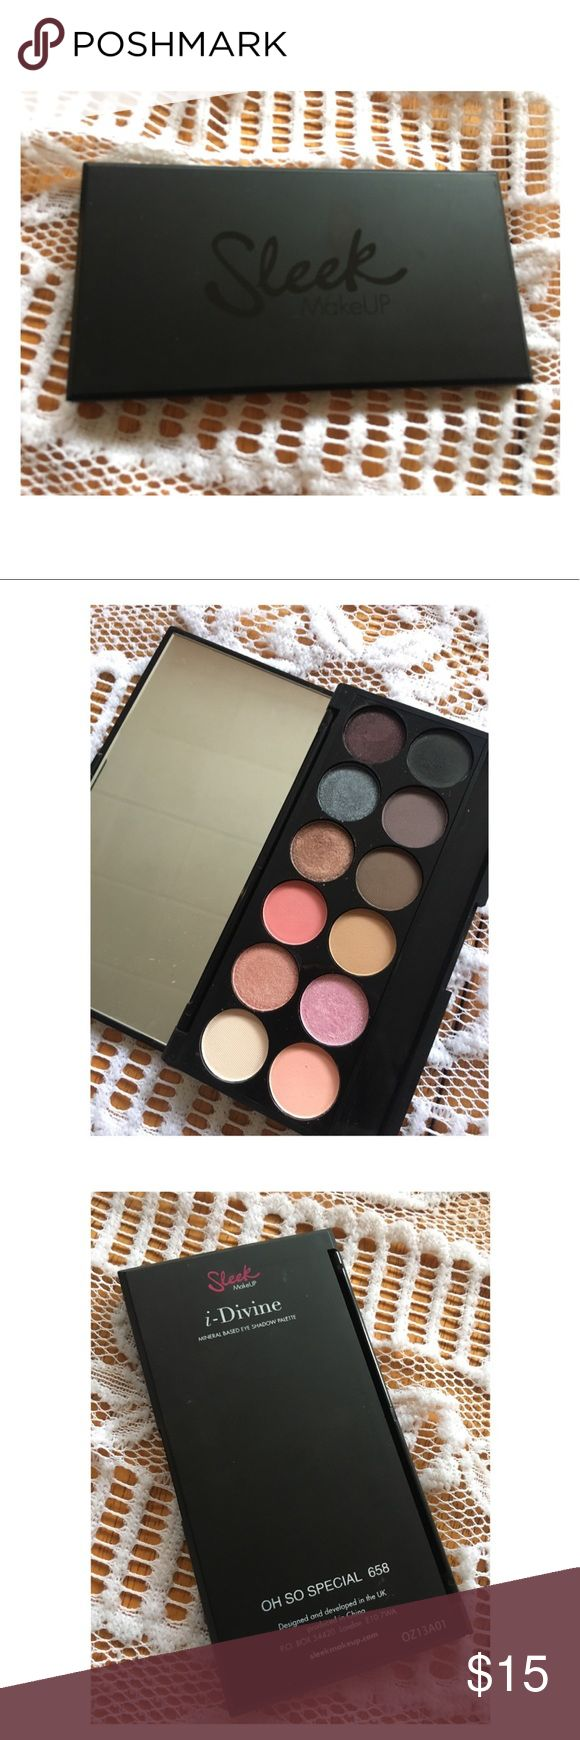 Sleek Eyeshadow Palette Never used, Only swatched Sleek eyeshadow palette. Very well pigmented. Only getting rid of to make more room for new makeup. Thanks for your interest! sleek Makeup Eyeshadow